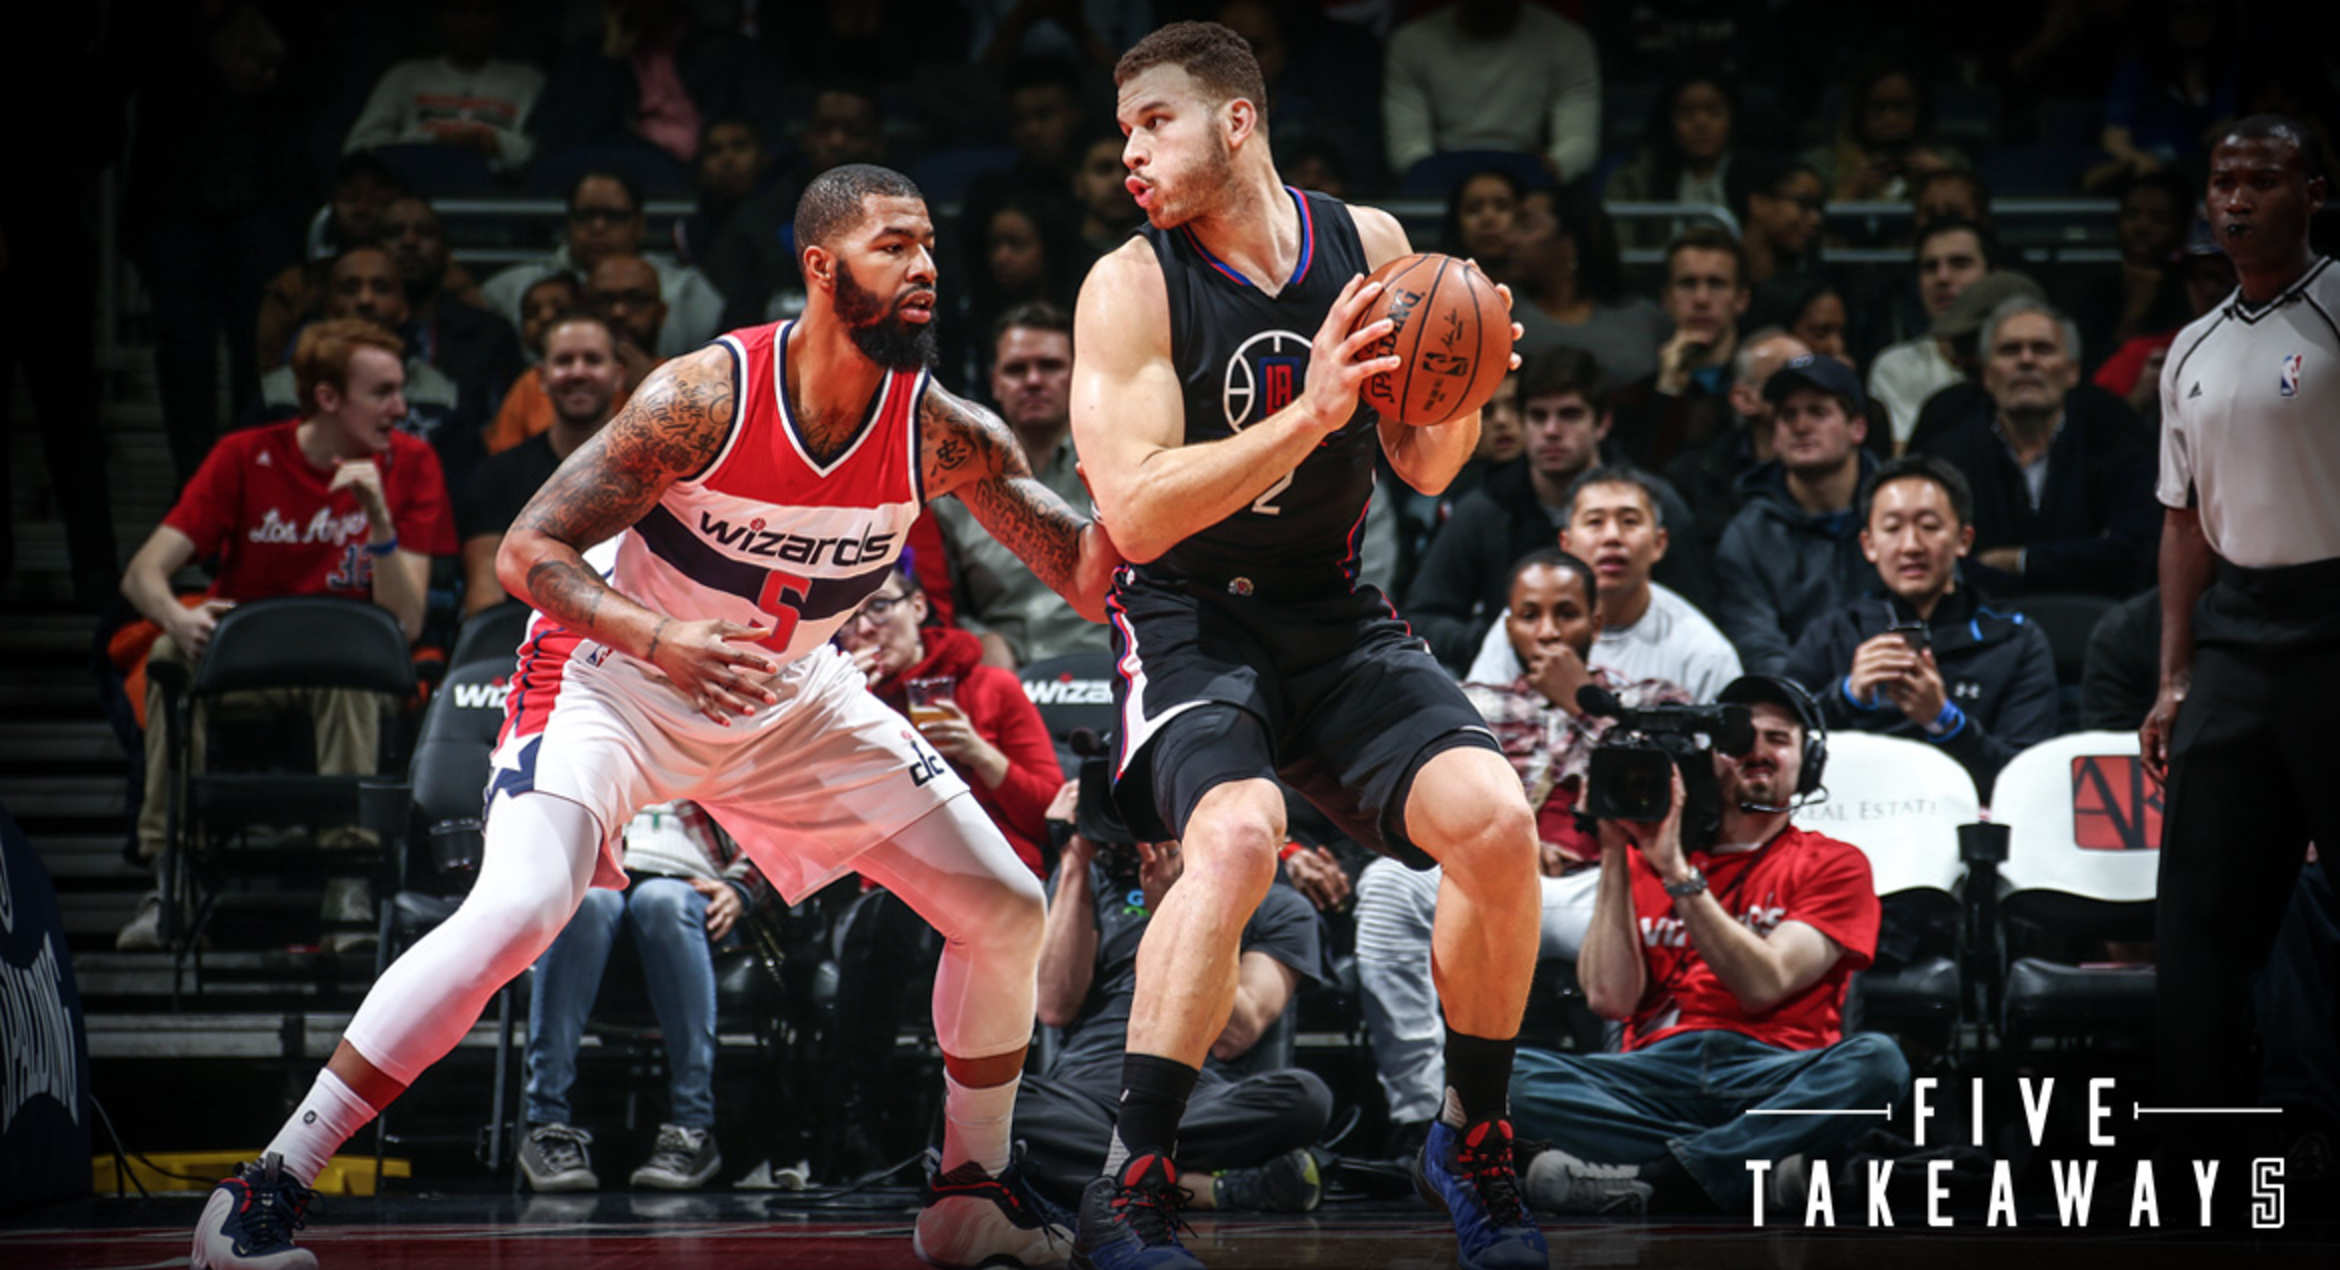 Five Takeaways: Clippers' Four-Game Win Streak Snapped In Loss To Wizards